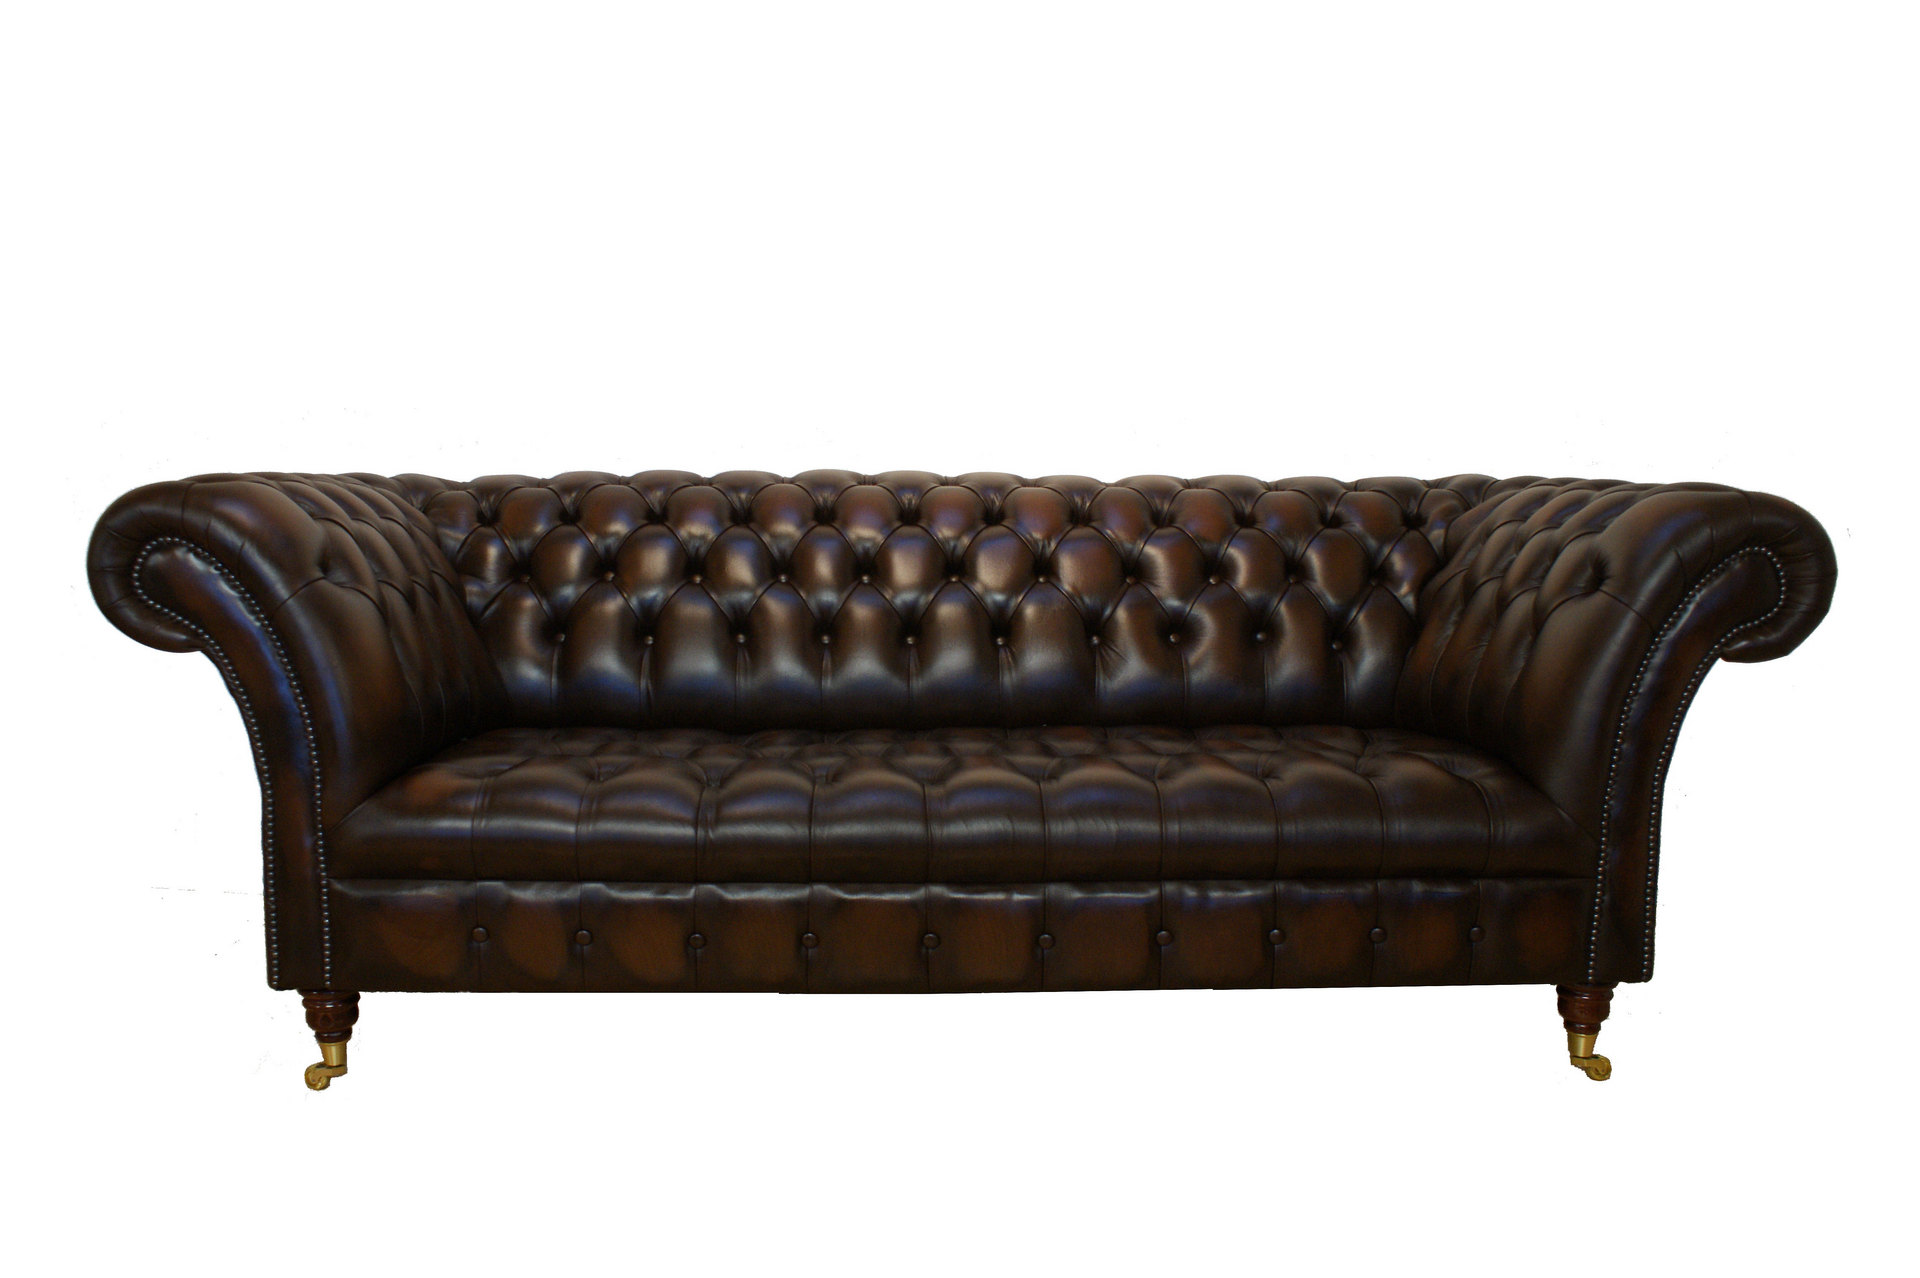 How to buy a cheap chesterfield sofa designersofas4u blog for Buy furniture for cheap